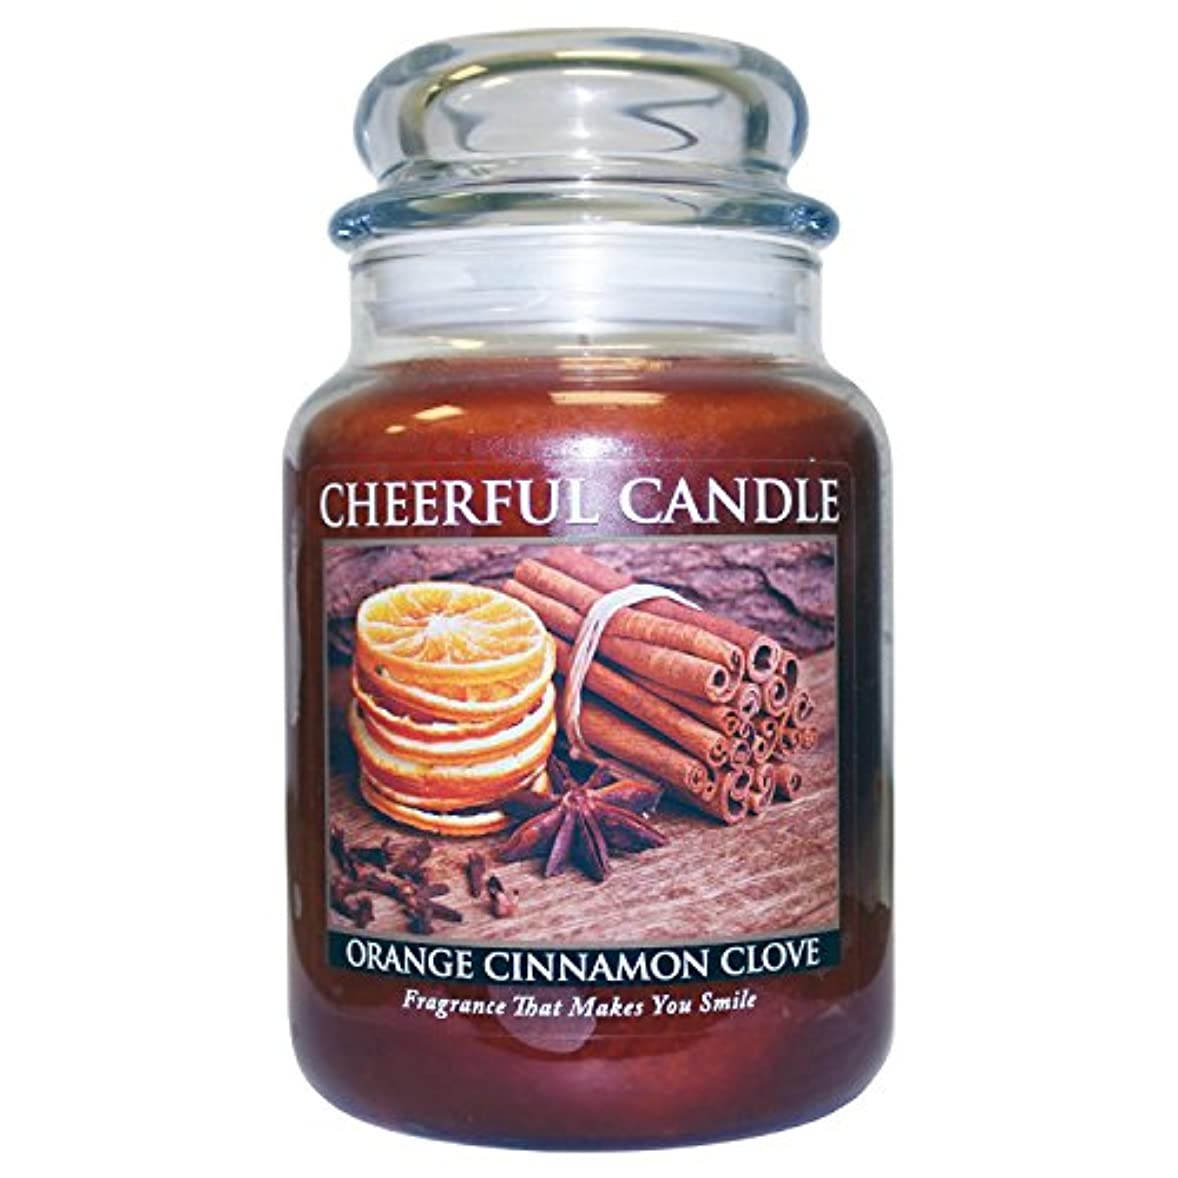 侮辱土地歴史的A Cheerful Giver Orange Cinnamon Clove Jar Candle, 24-Ounce by Cheerful Giver [並行輸入品]